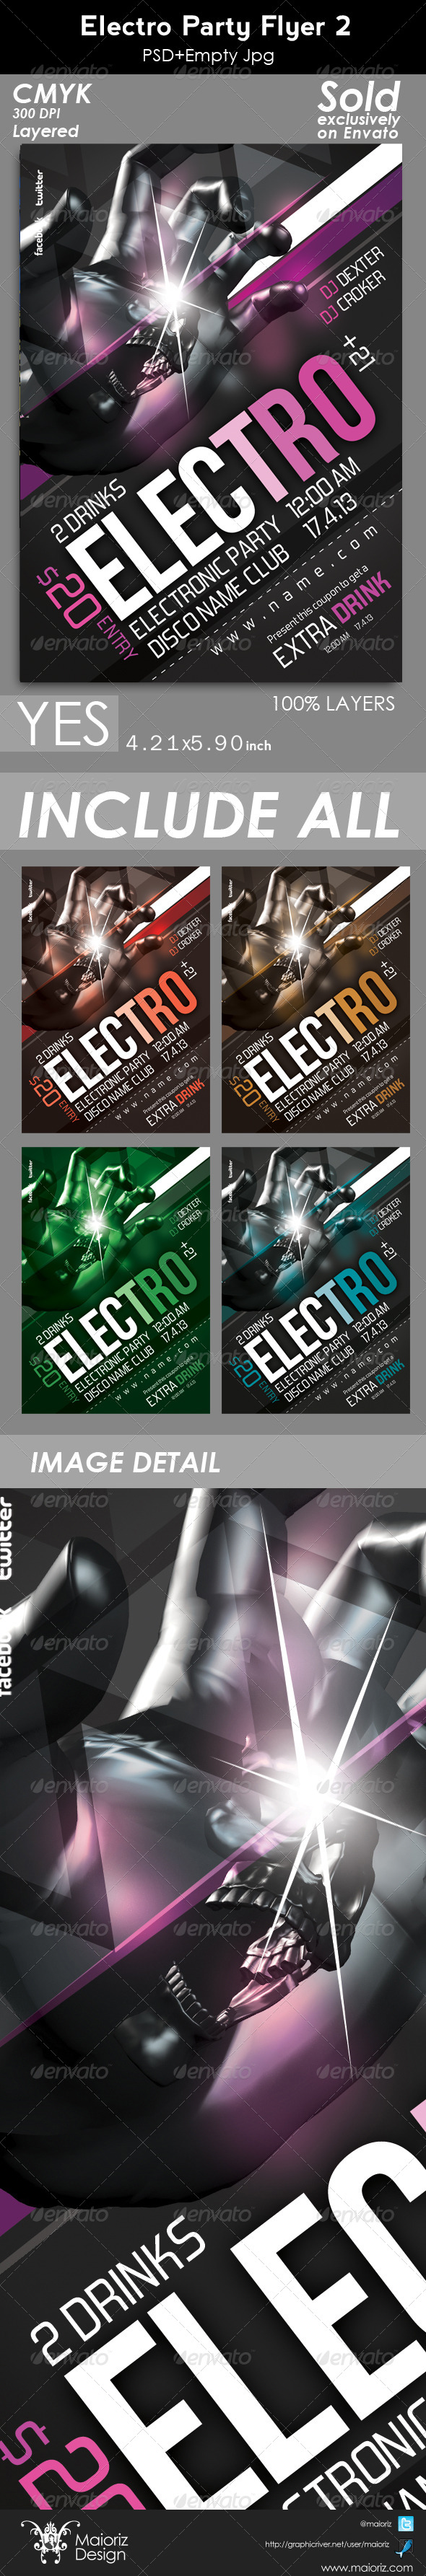 GraphicRiver Electro Party Flyer 2 5002495